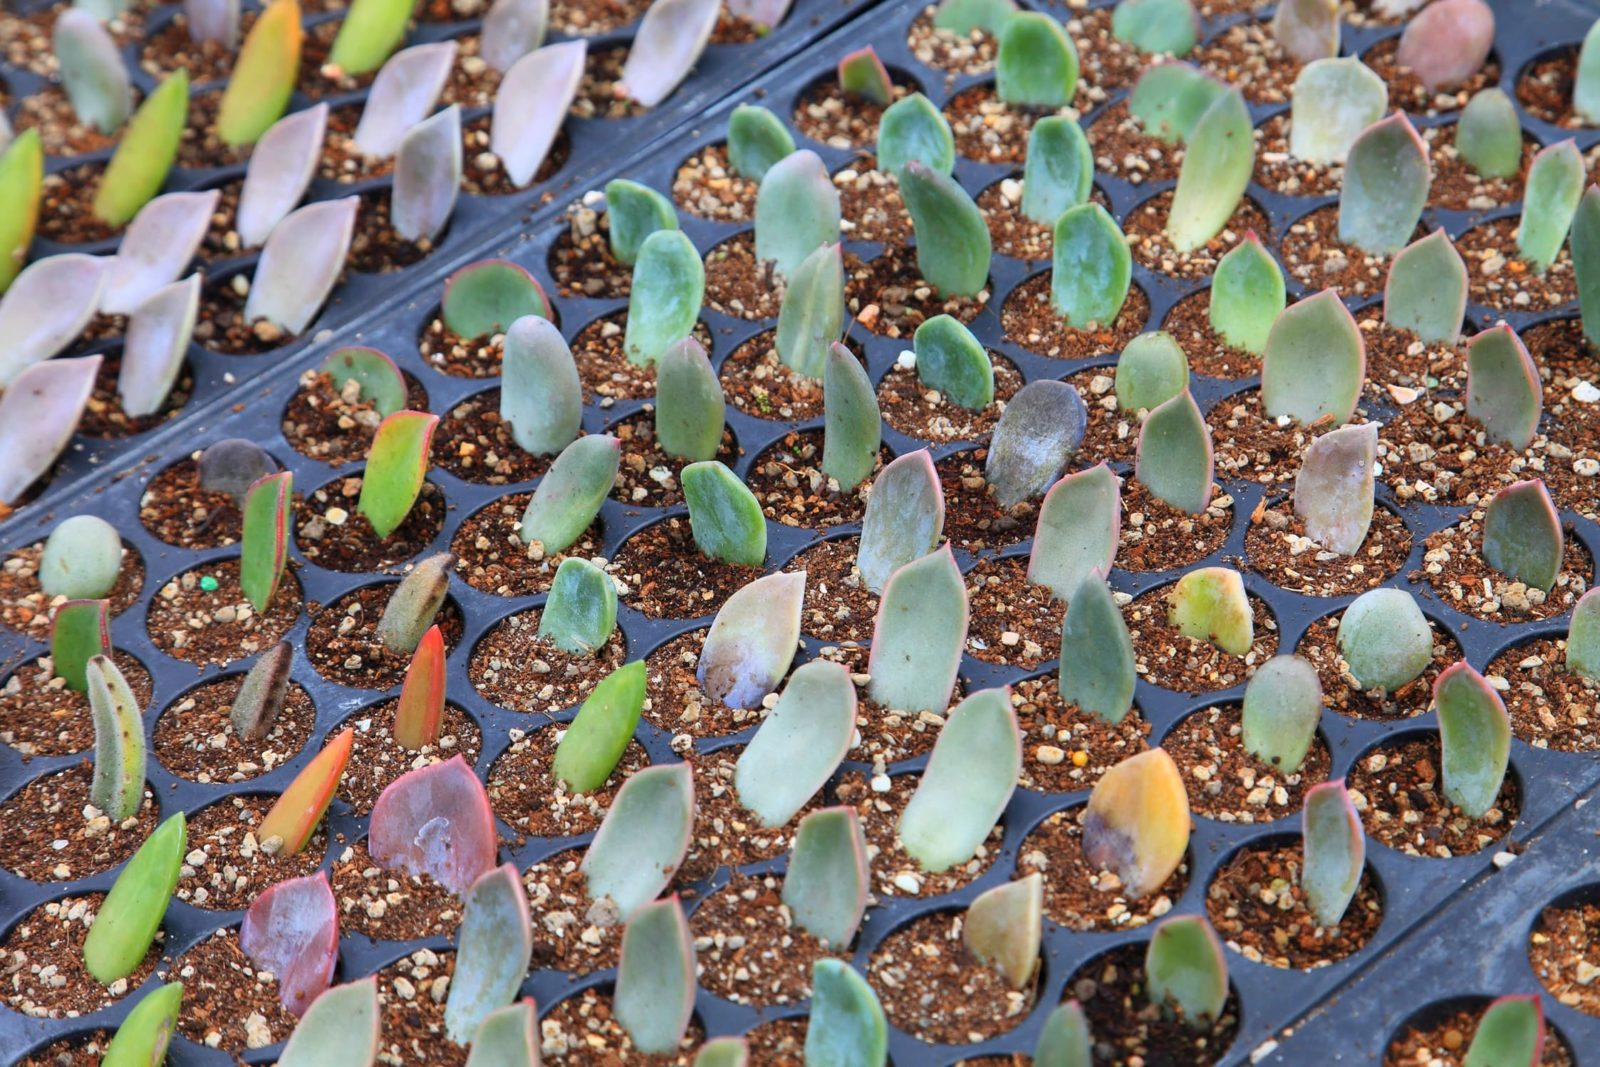 propagation of succulent leaf cuttings in peat-free compost